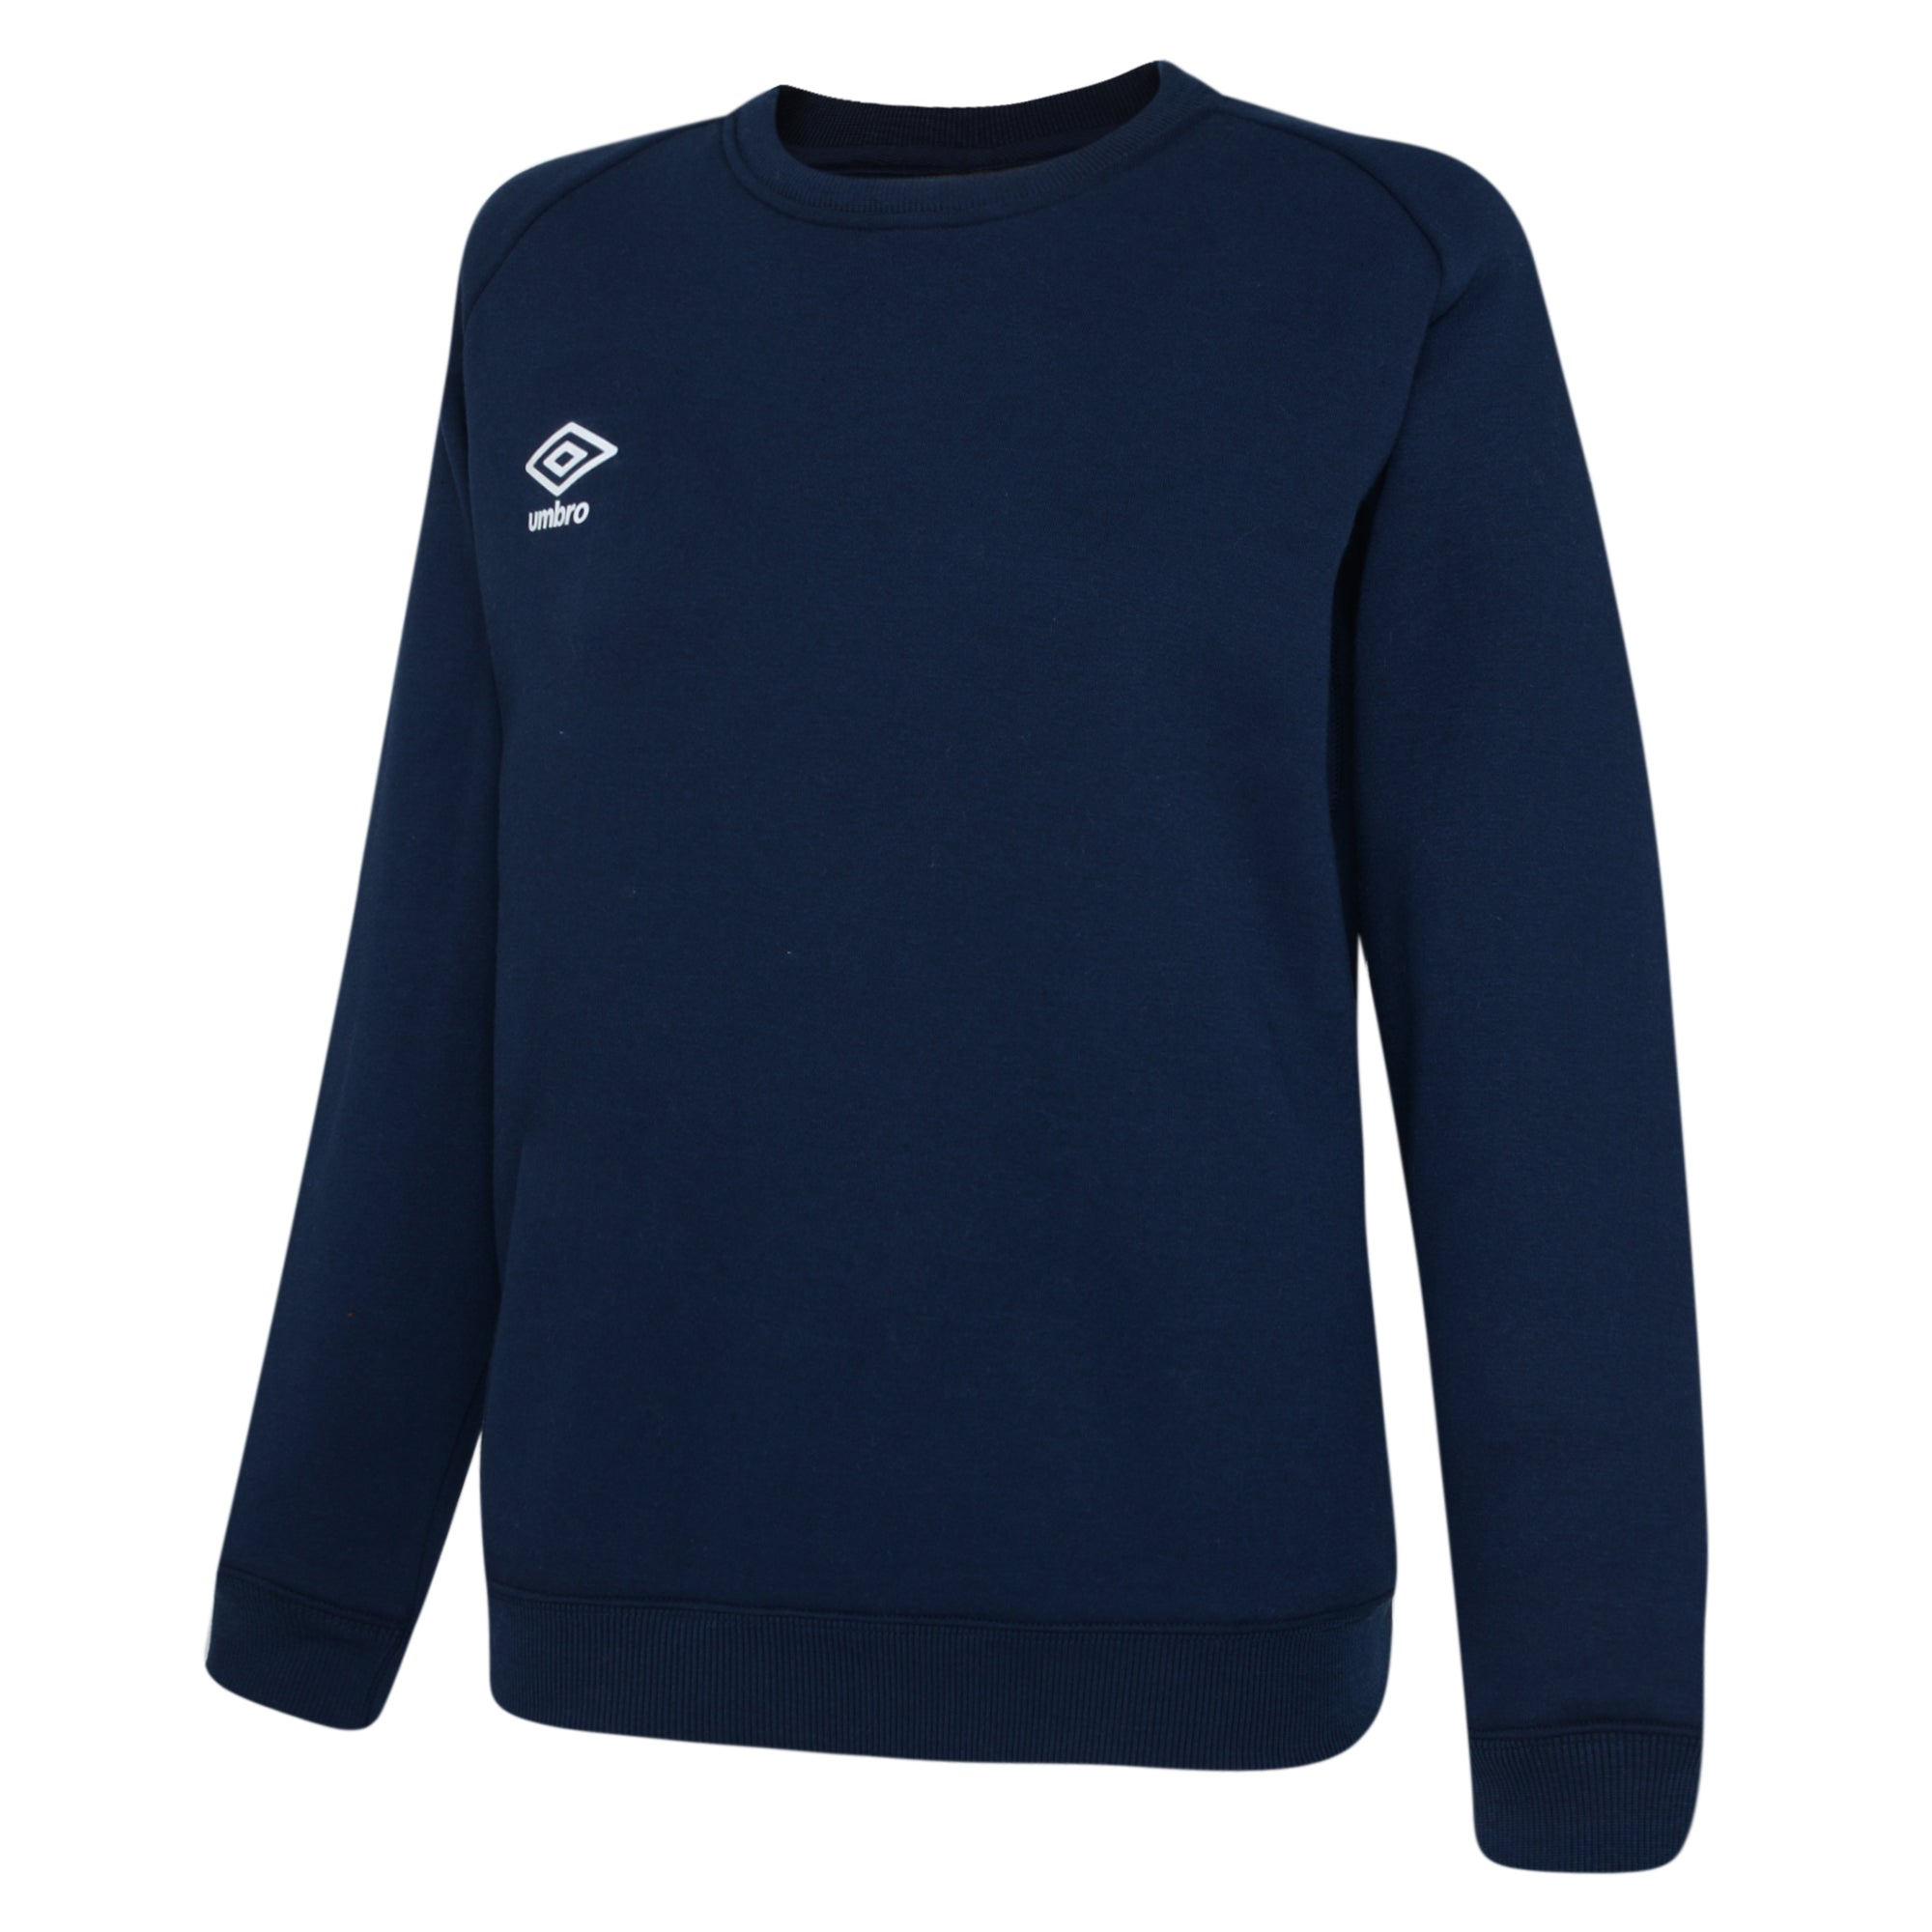 Umbro Club Leisure Women's Sweat - TW Navy/White